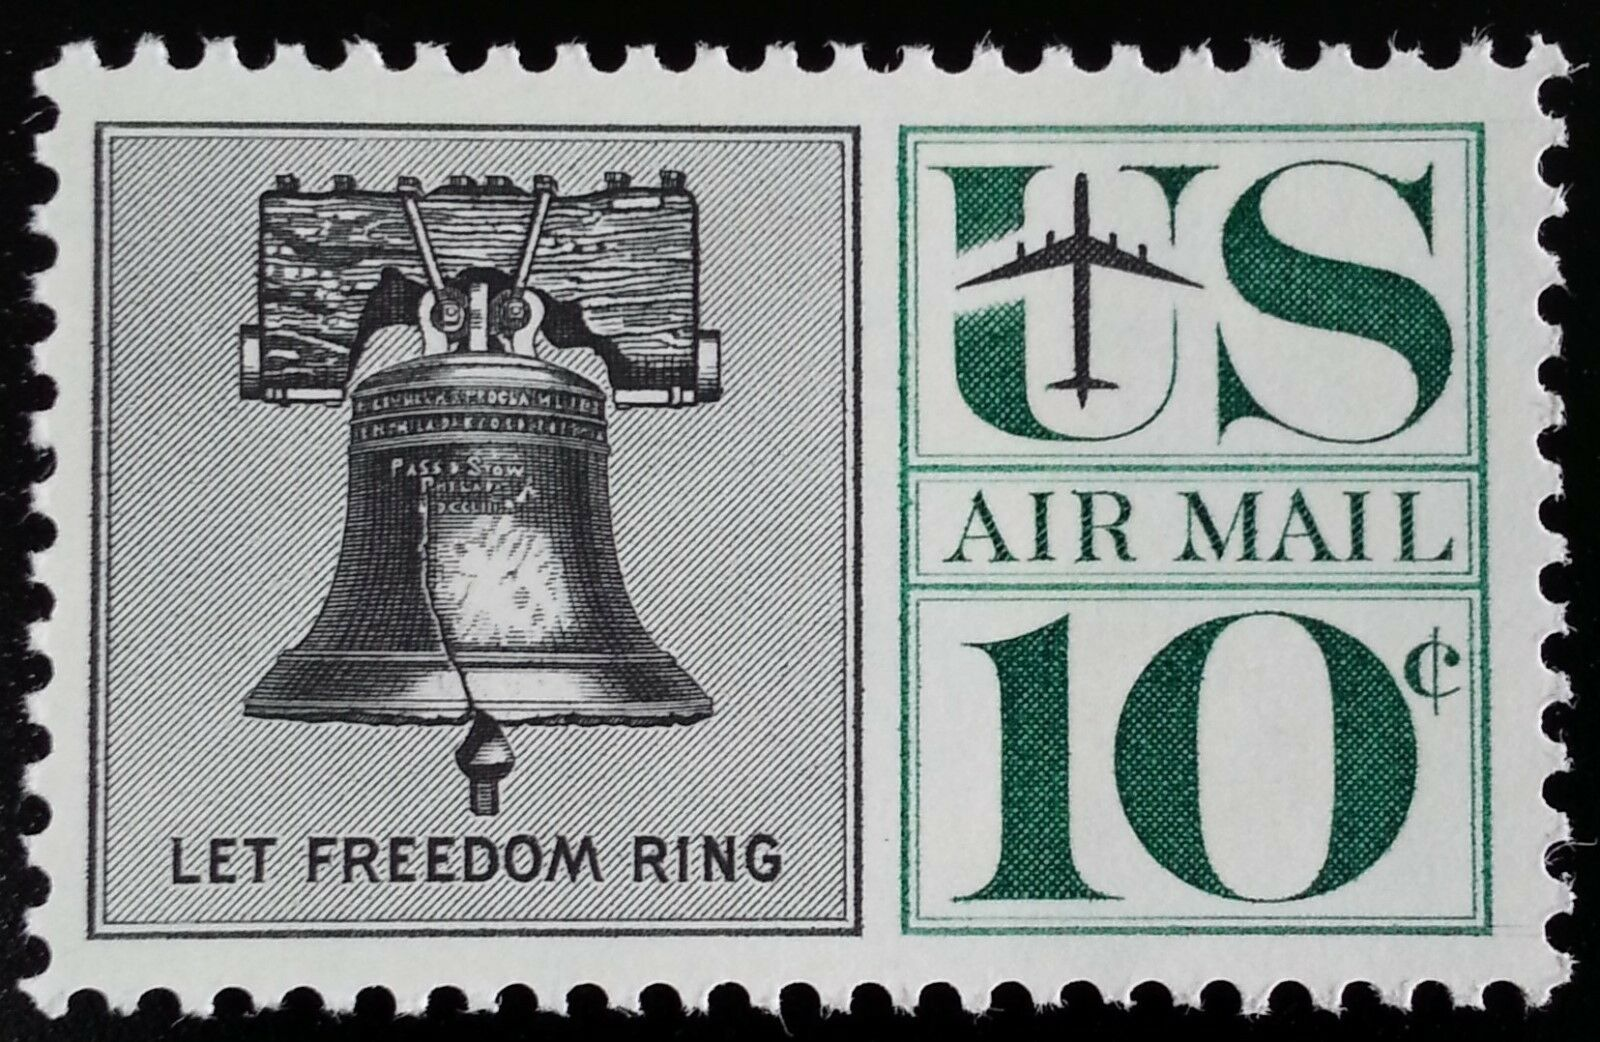 1960 10c Liberty Bell, Let Freedom Ring, Air Mail Scott